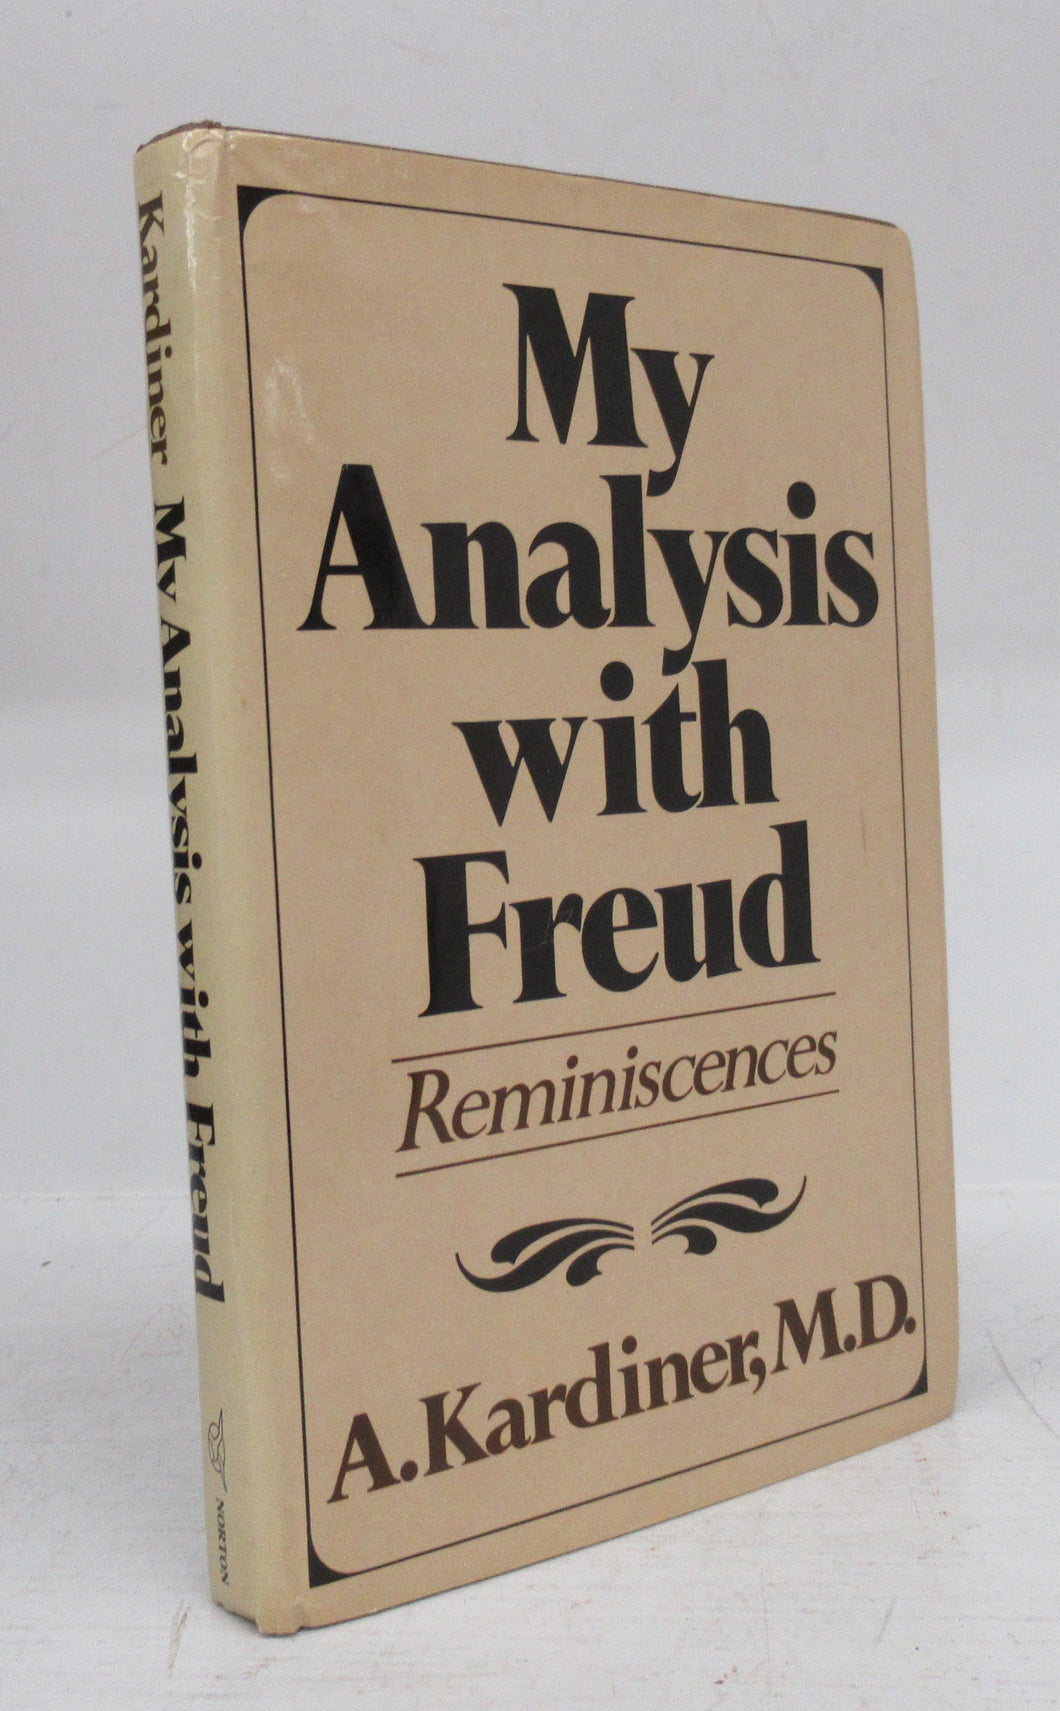 My Analysis with Freud: Reminiscences